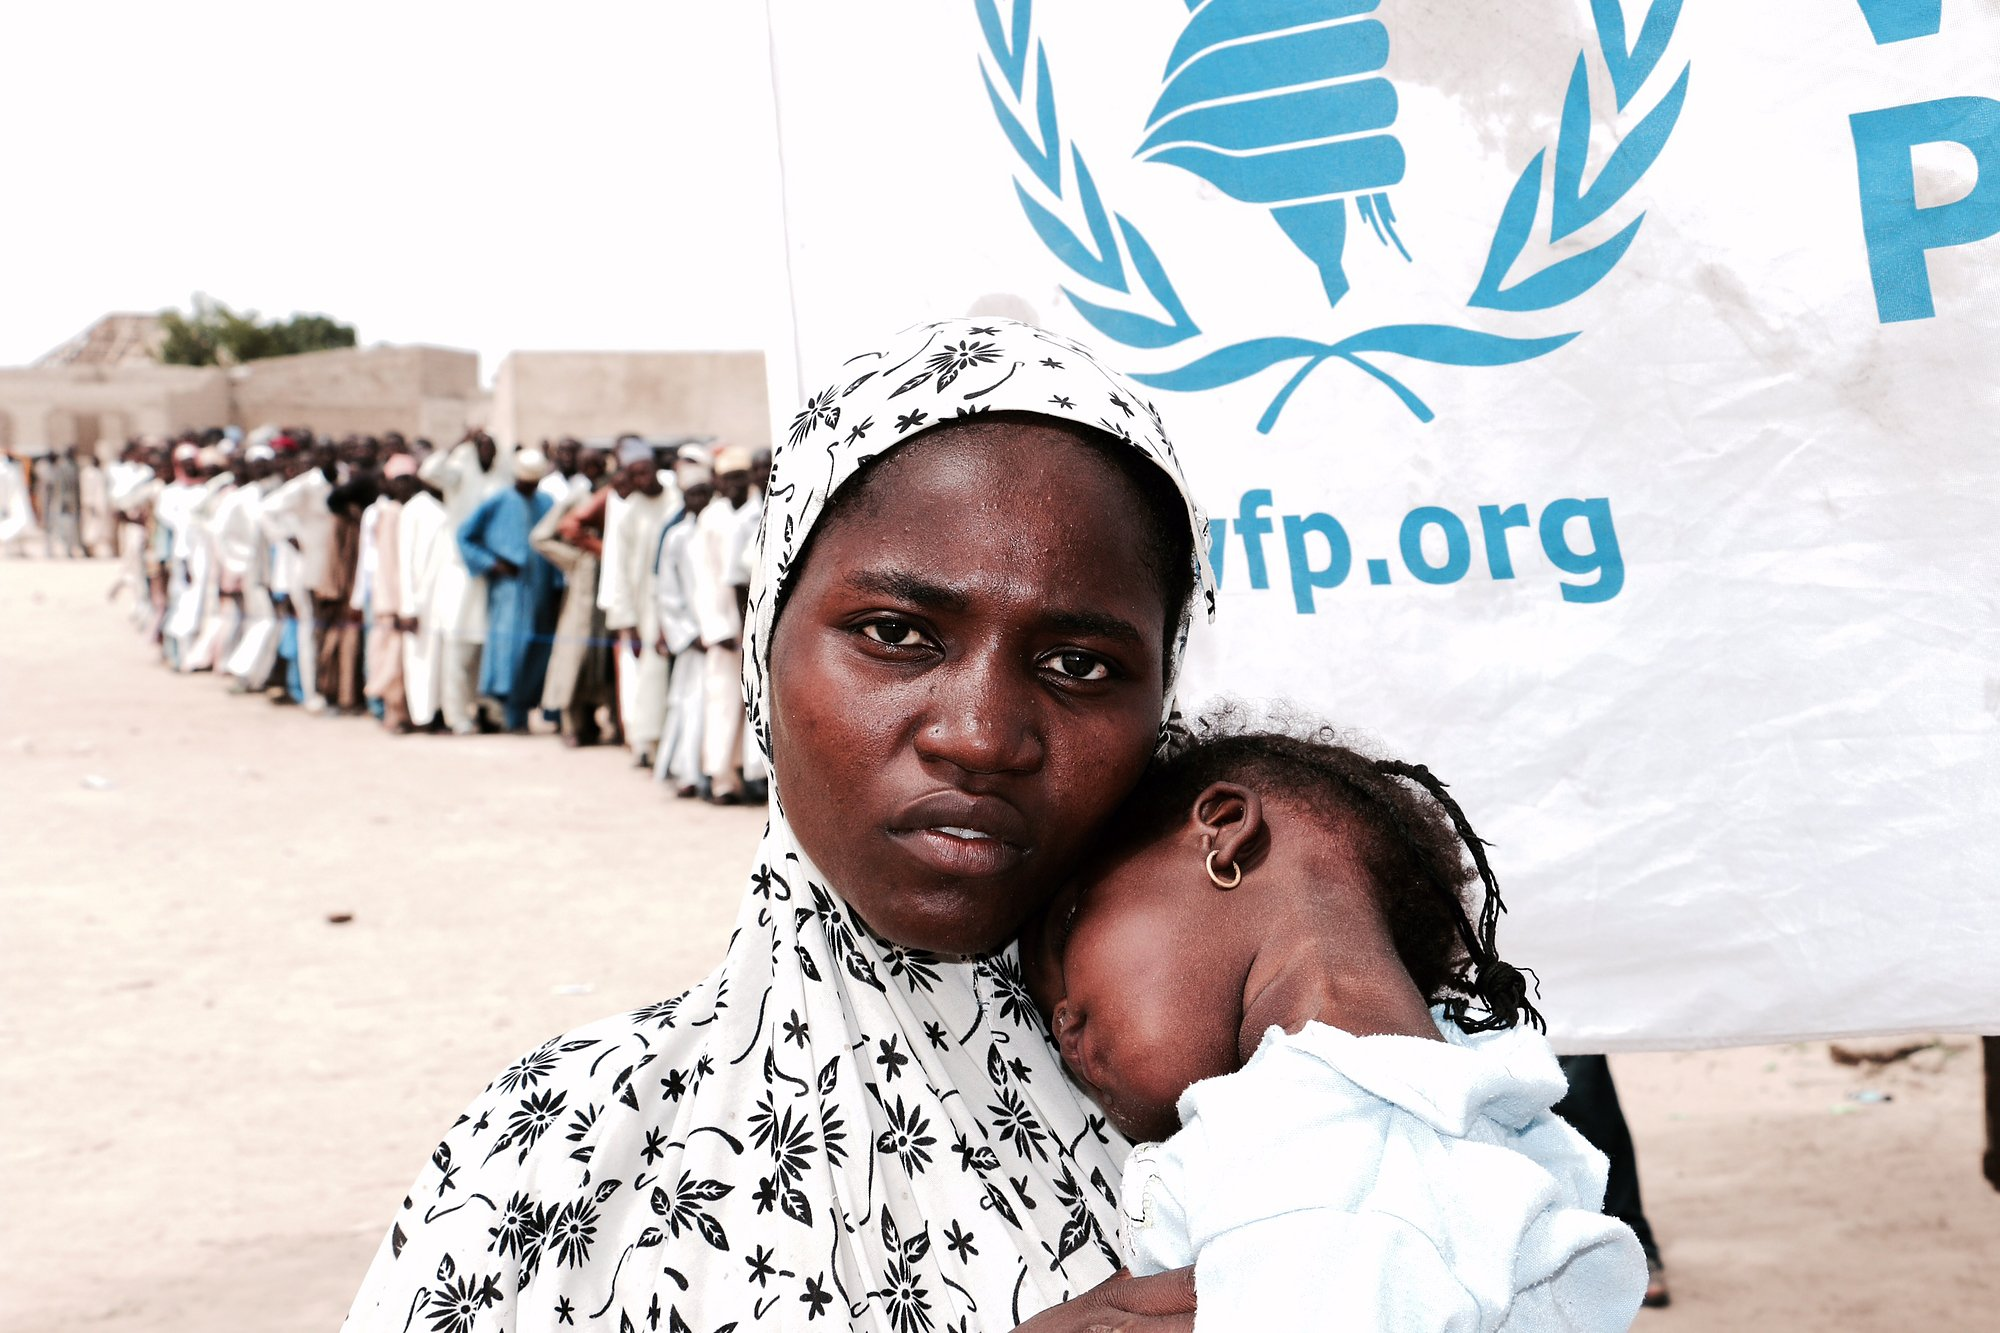 This mother in Maiduguri, Nigeria is among tens of thousands of displaced people who rely on monthly cash assistance of roughly $12 per month from WFP to feed her child.